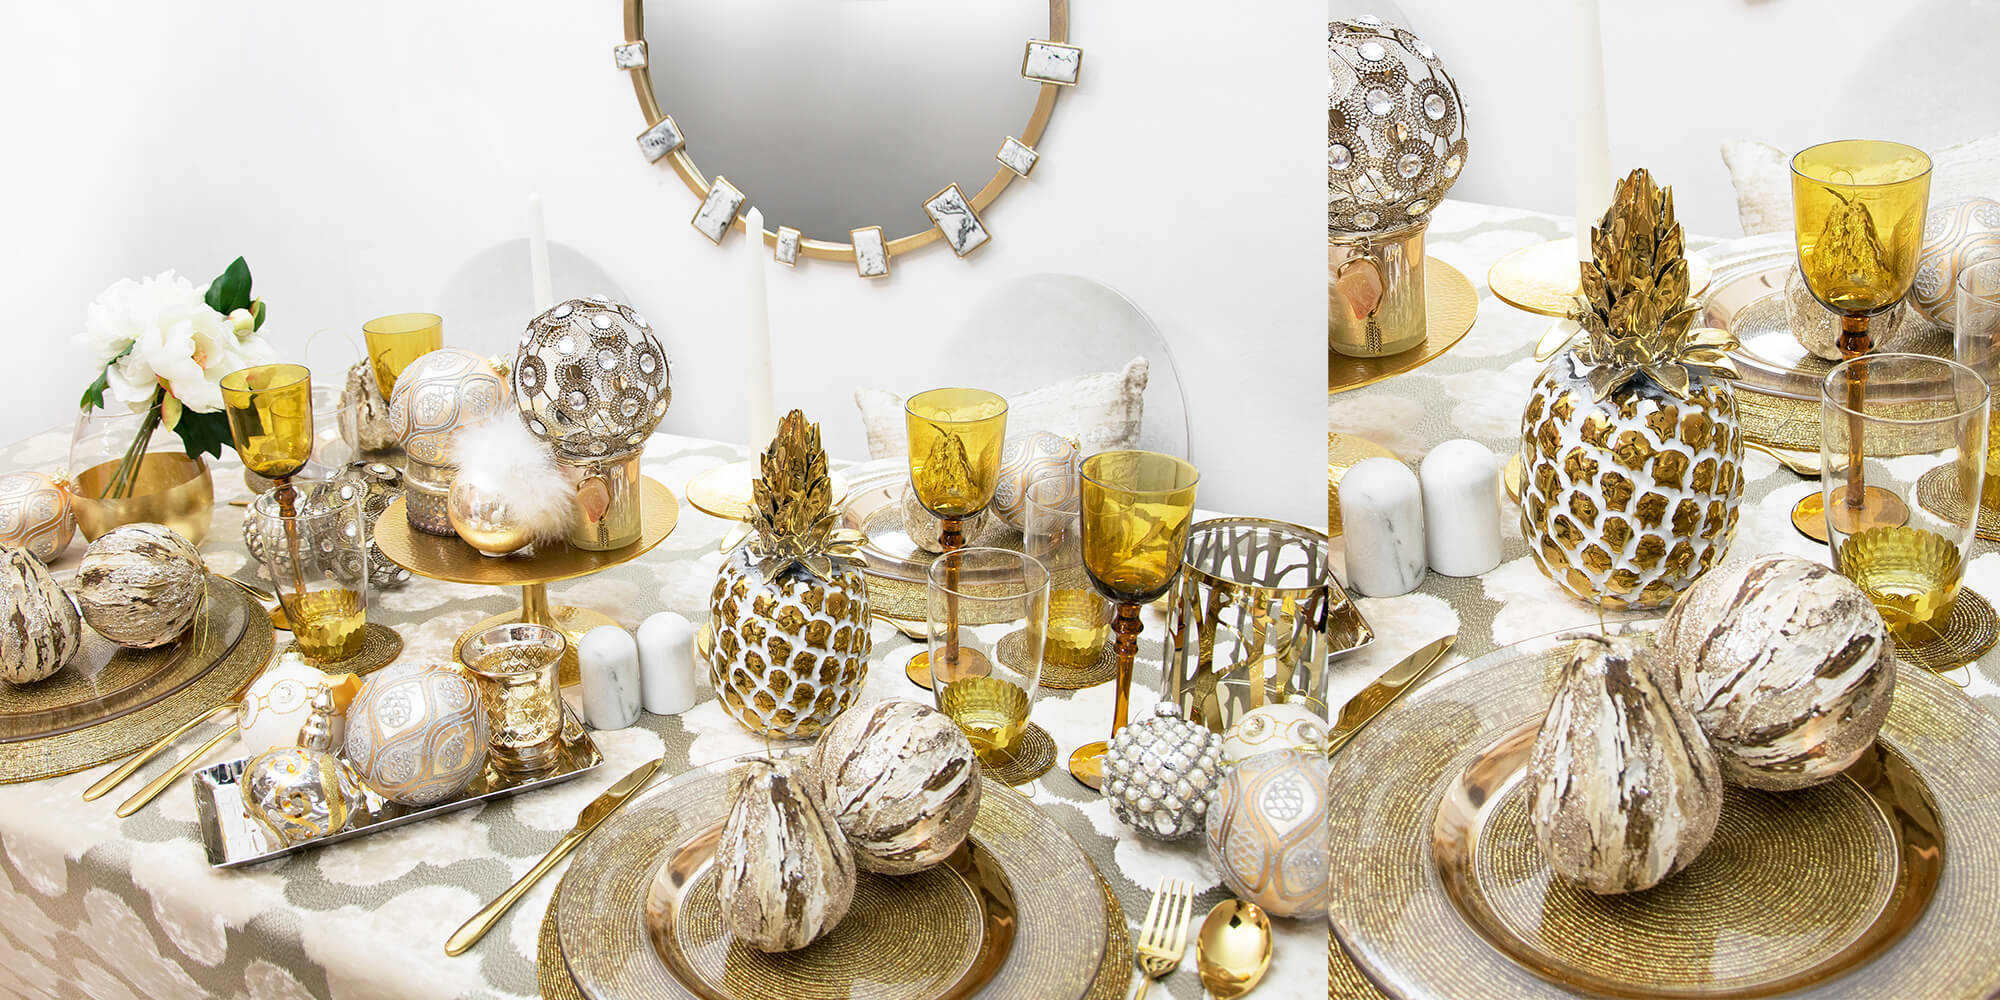 Pure Glam: Dinner in Gold